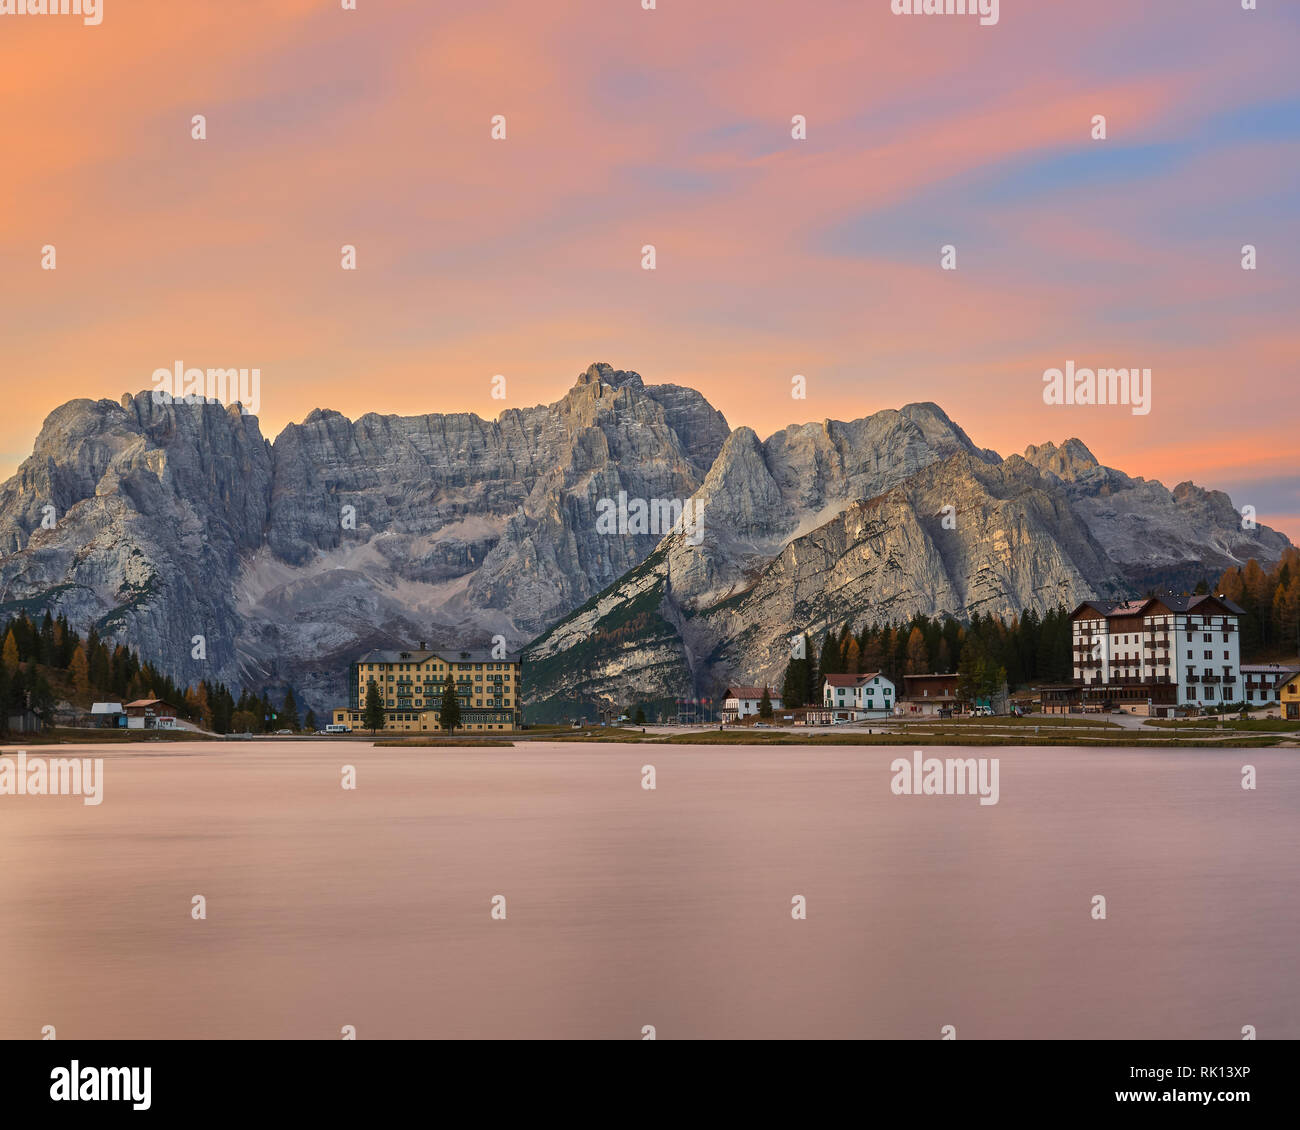 The Sorapis Group and Lago di Misurina at sunrise, Dolomites, Belluno, Veneto, Italy - Stock Image